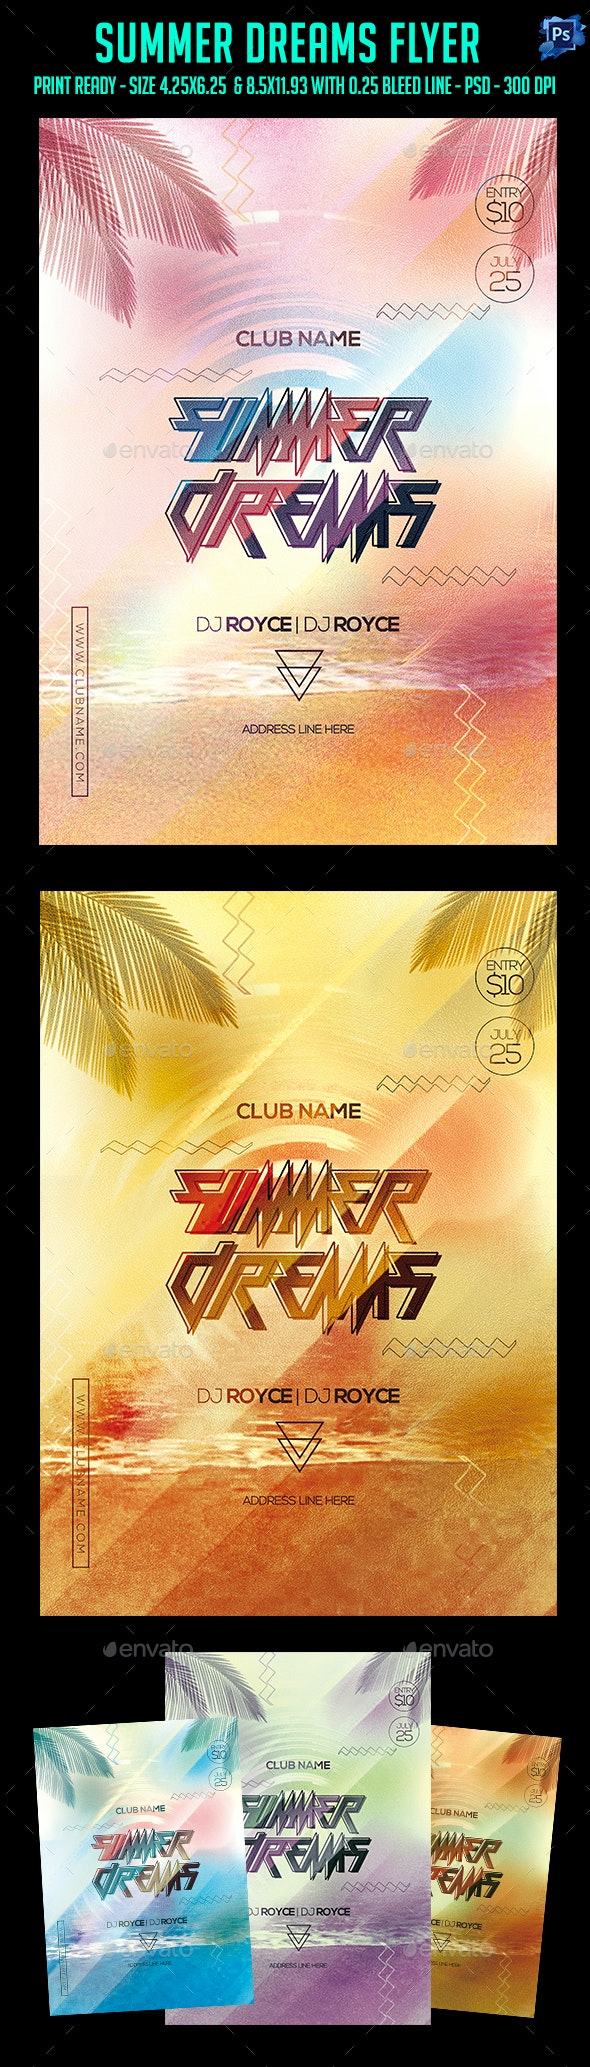 Summer Dreams Party Flyer - Clubs & Parties Events